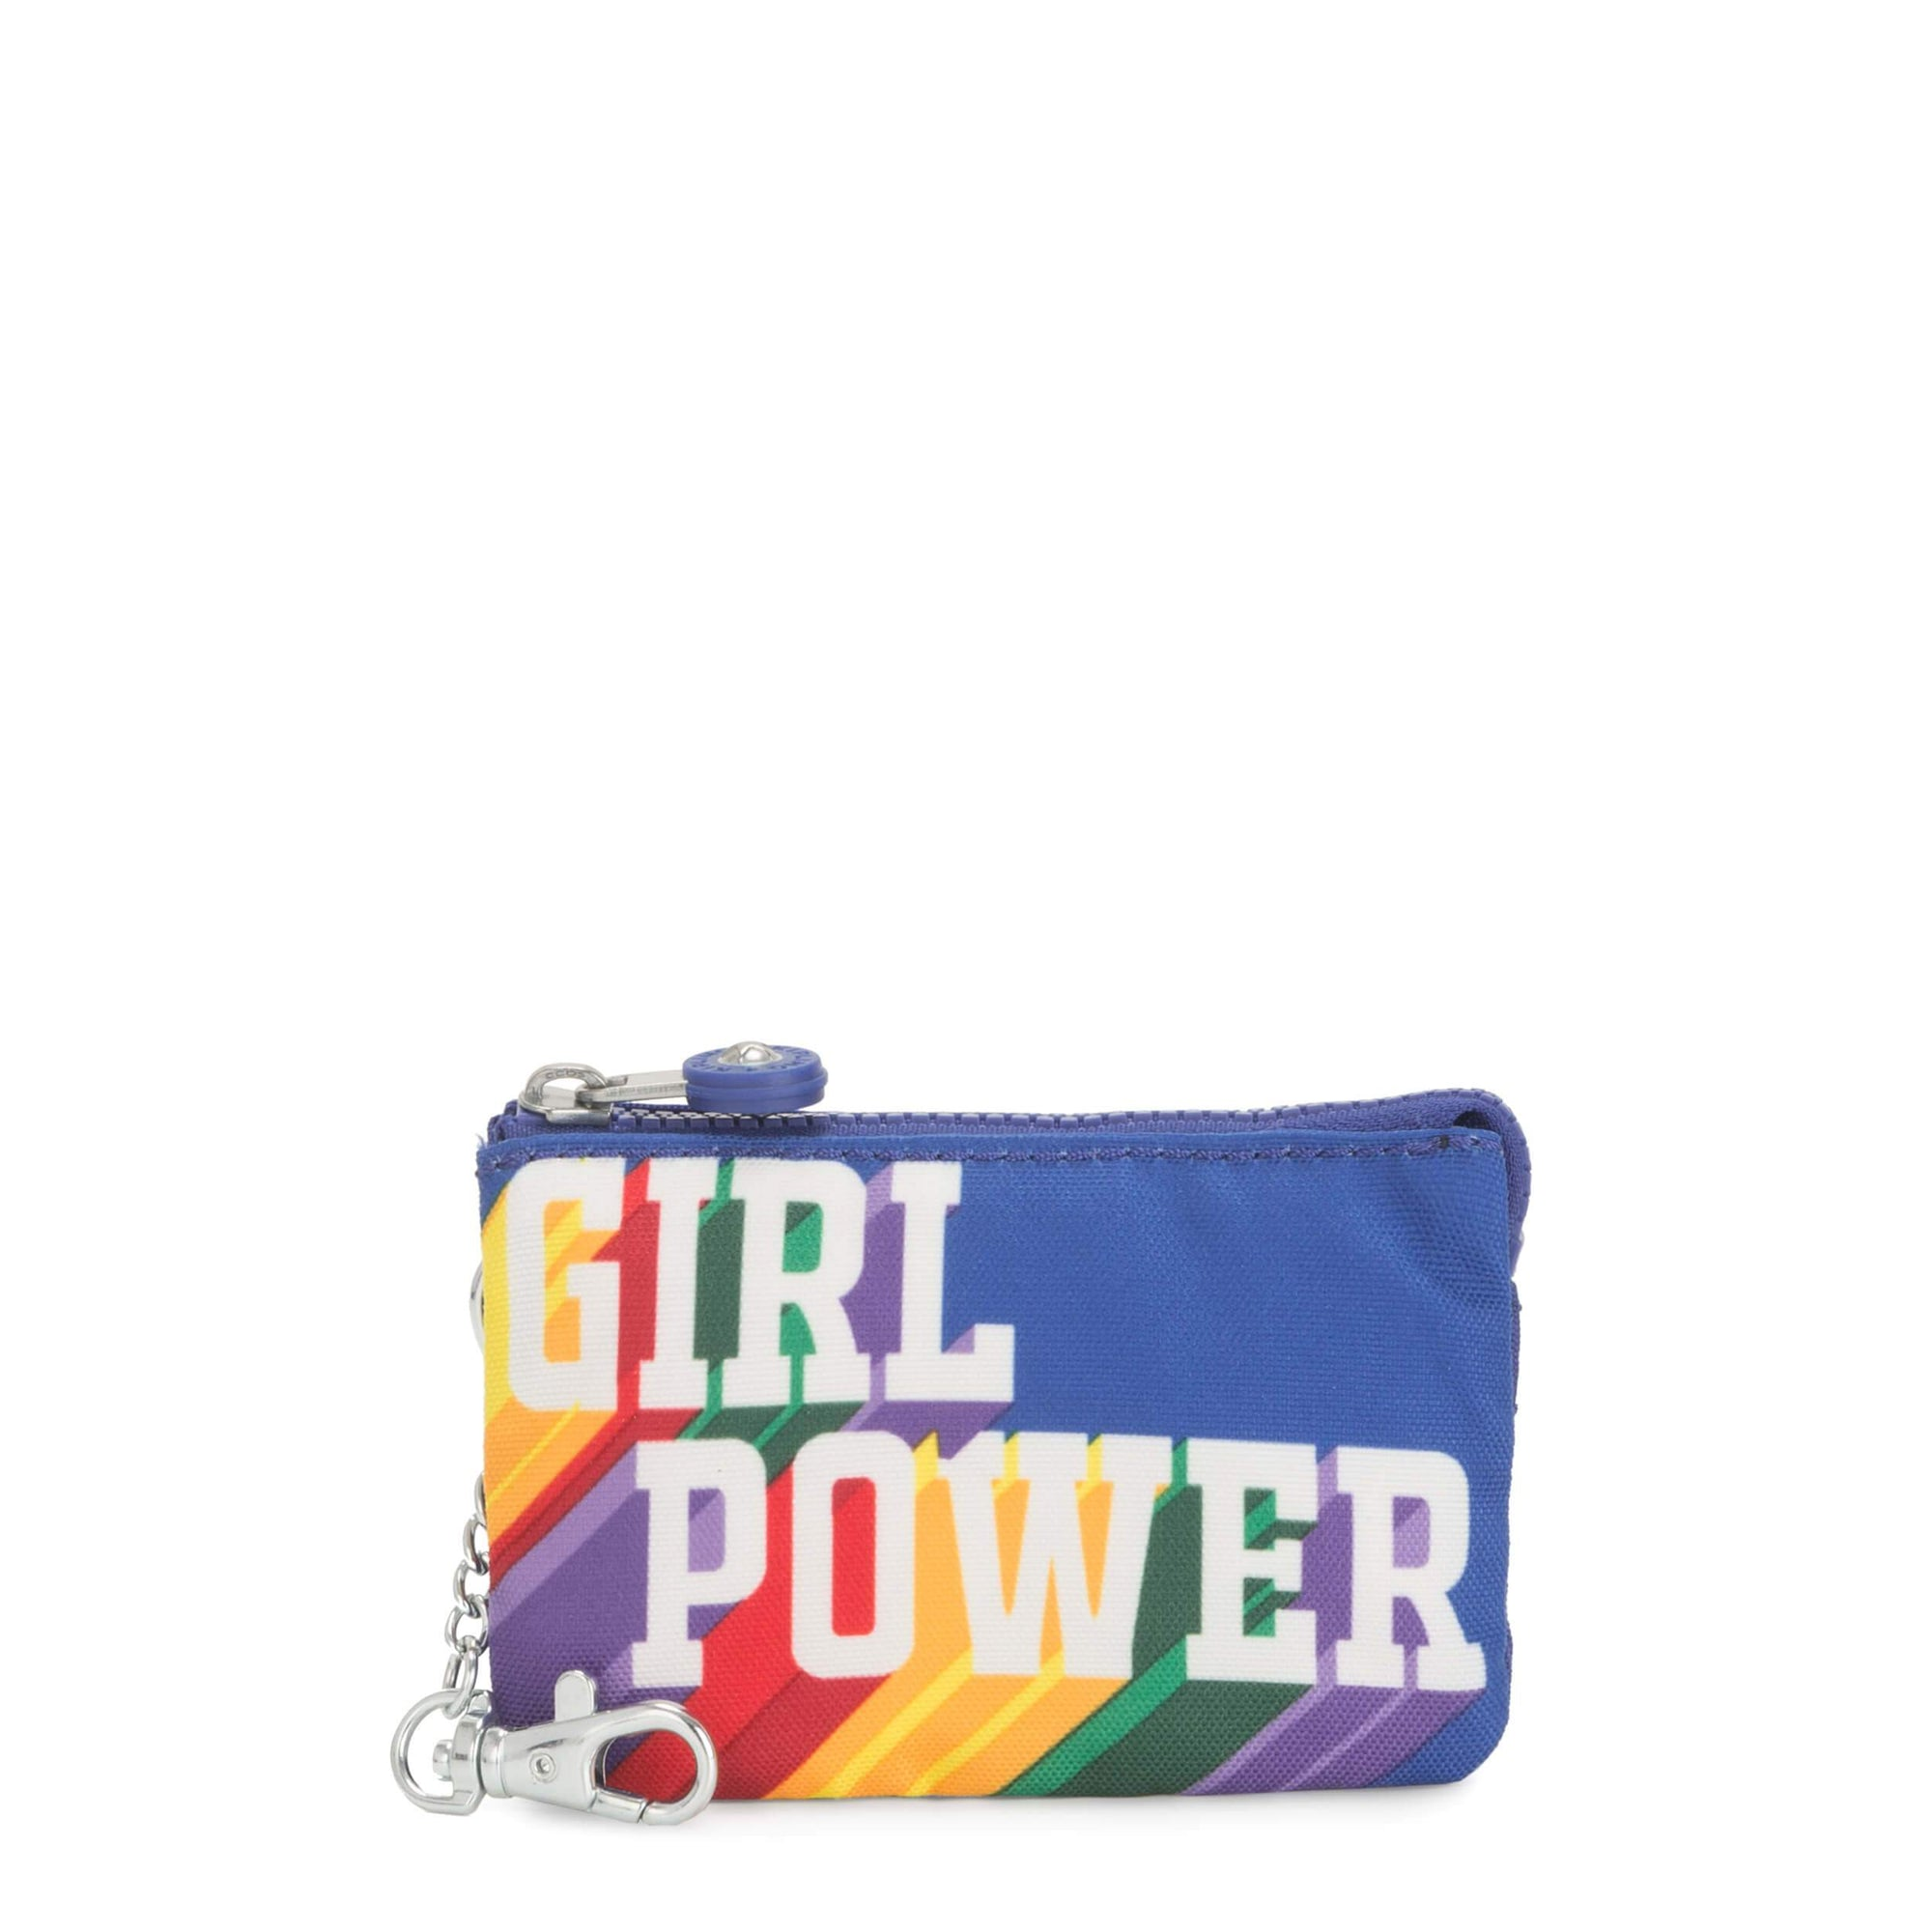 Monedero Kipling Mini Creativity Girl Powerrainb KI3810W13